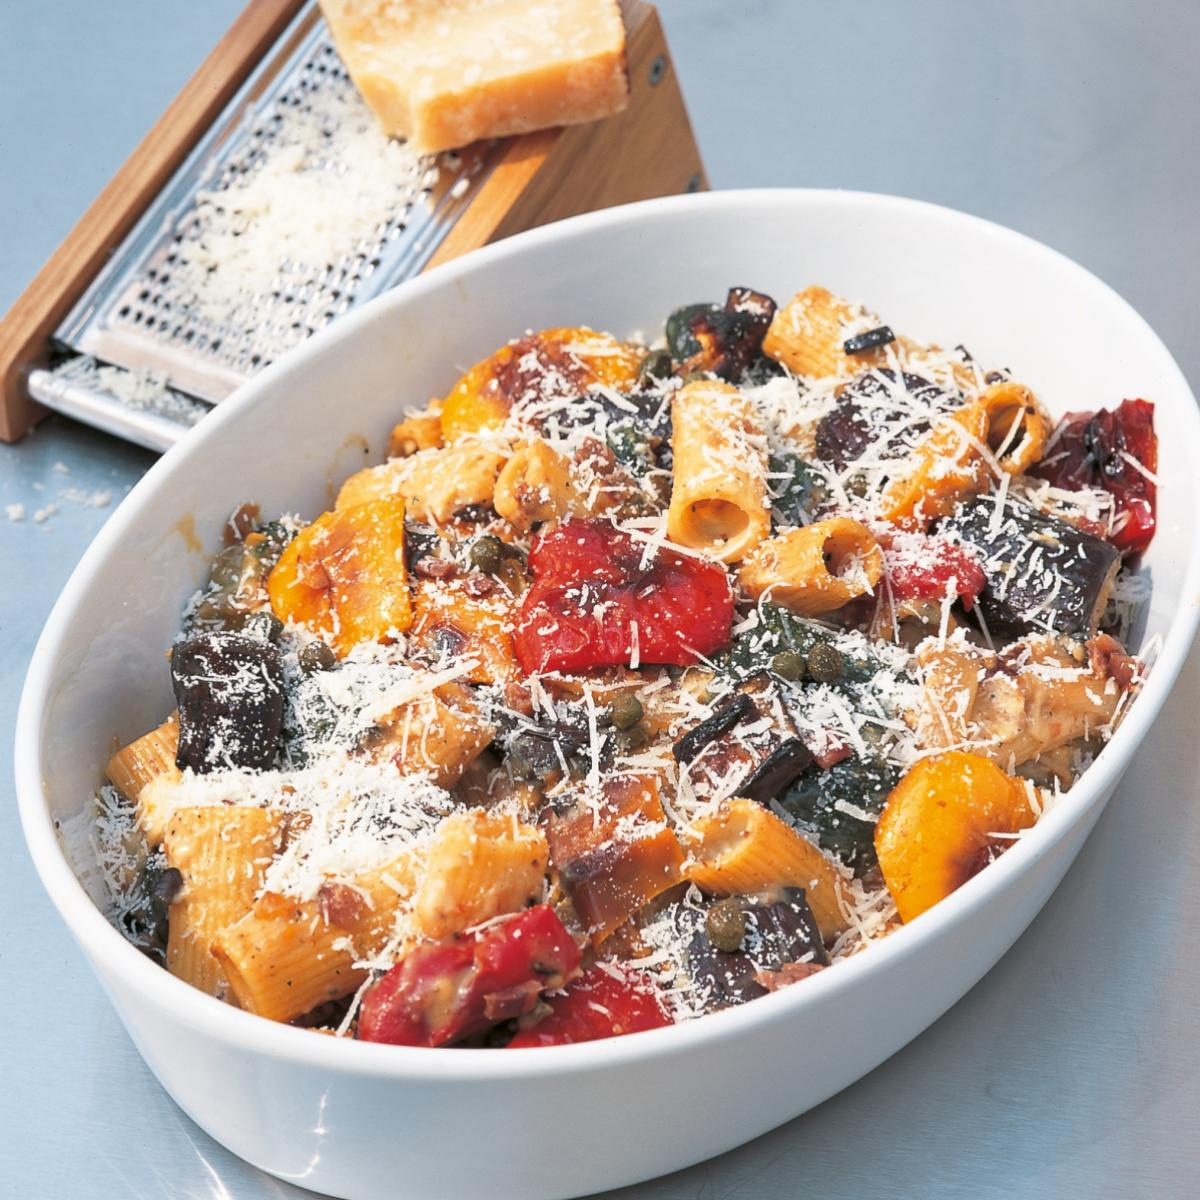 A picture of Delia's Gratin of Rigatoni with Roasted Vegetables recipe